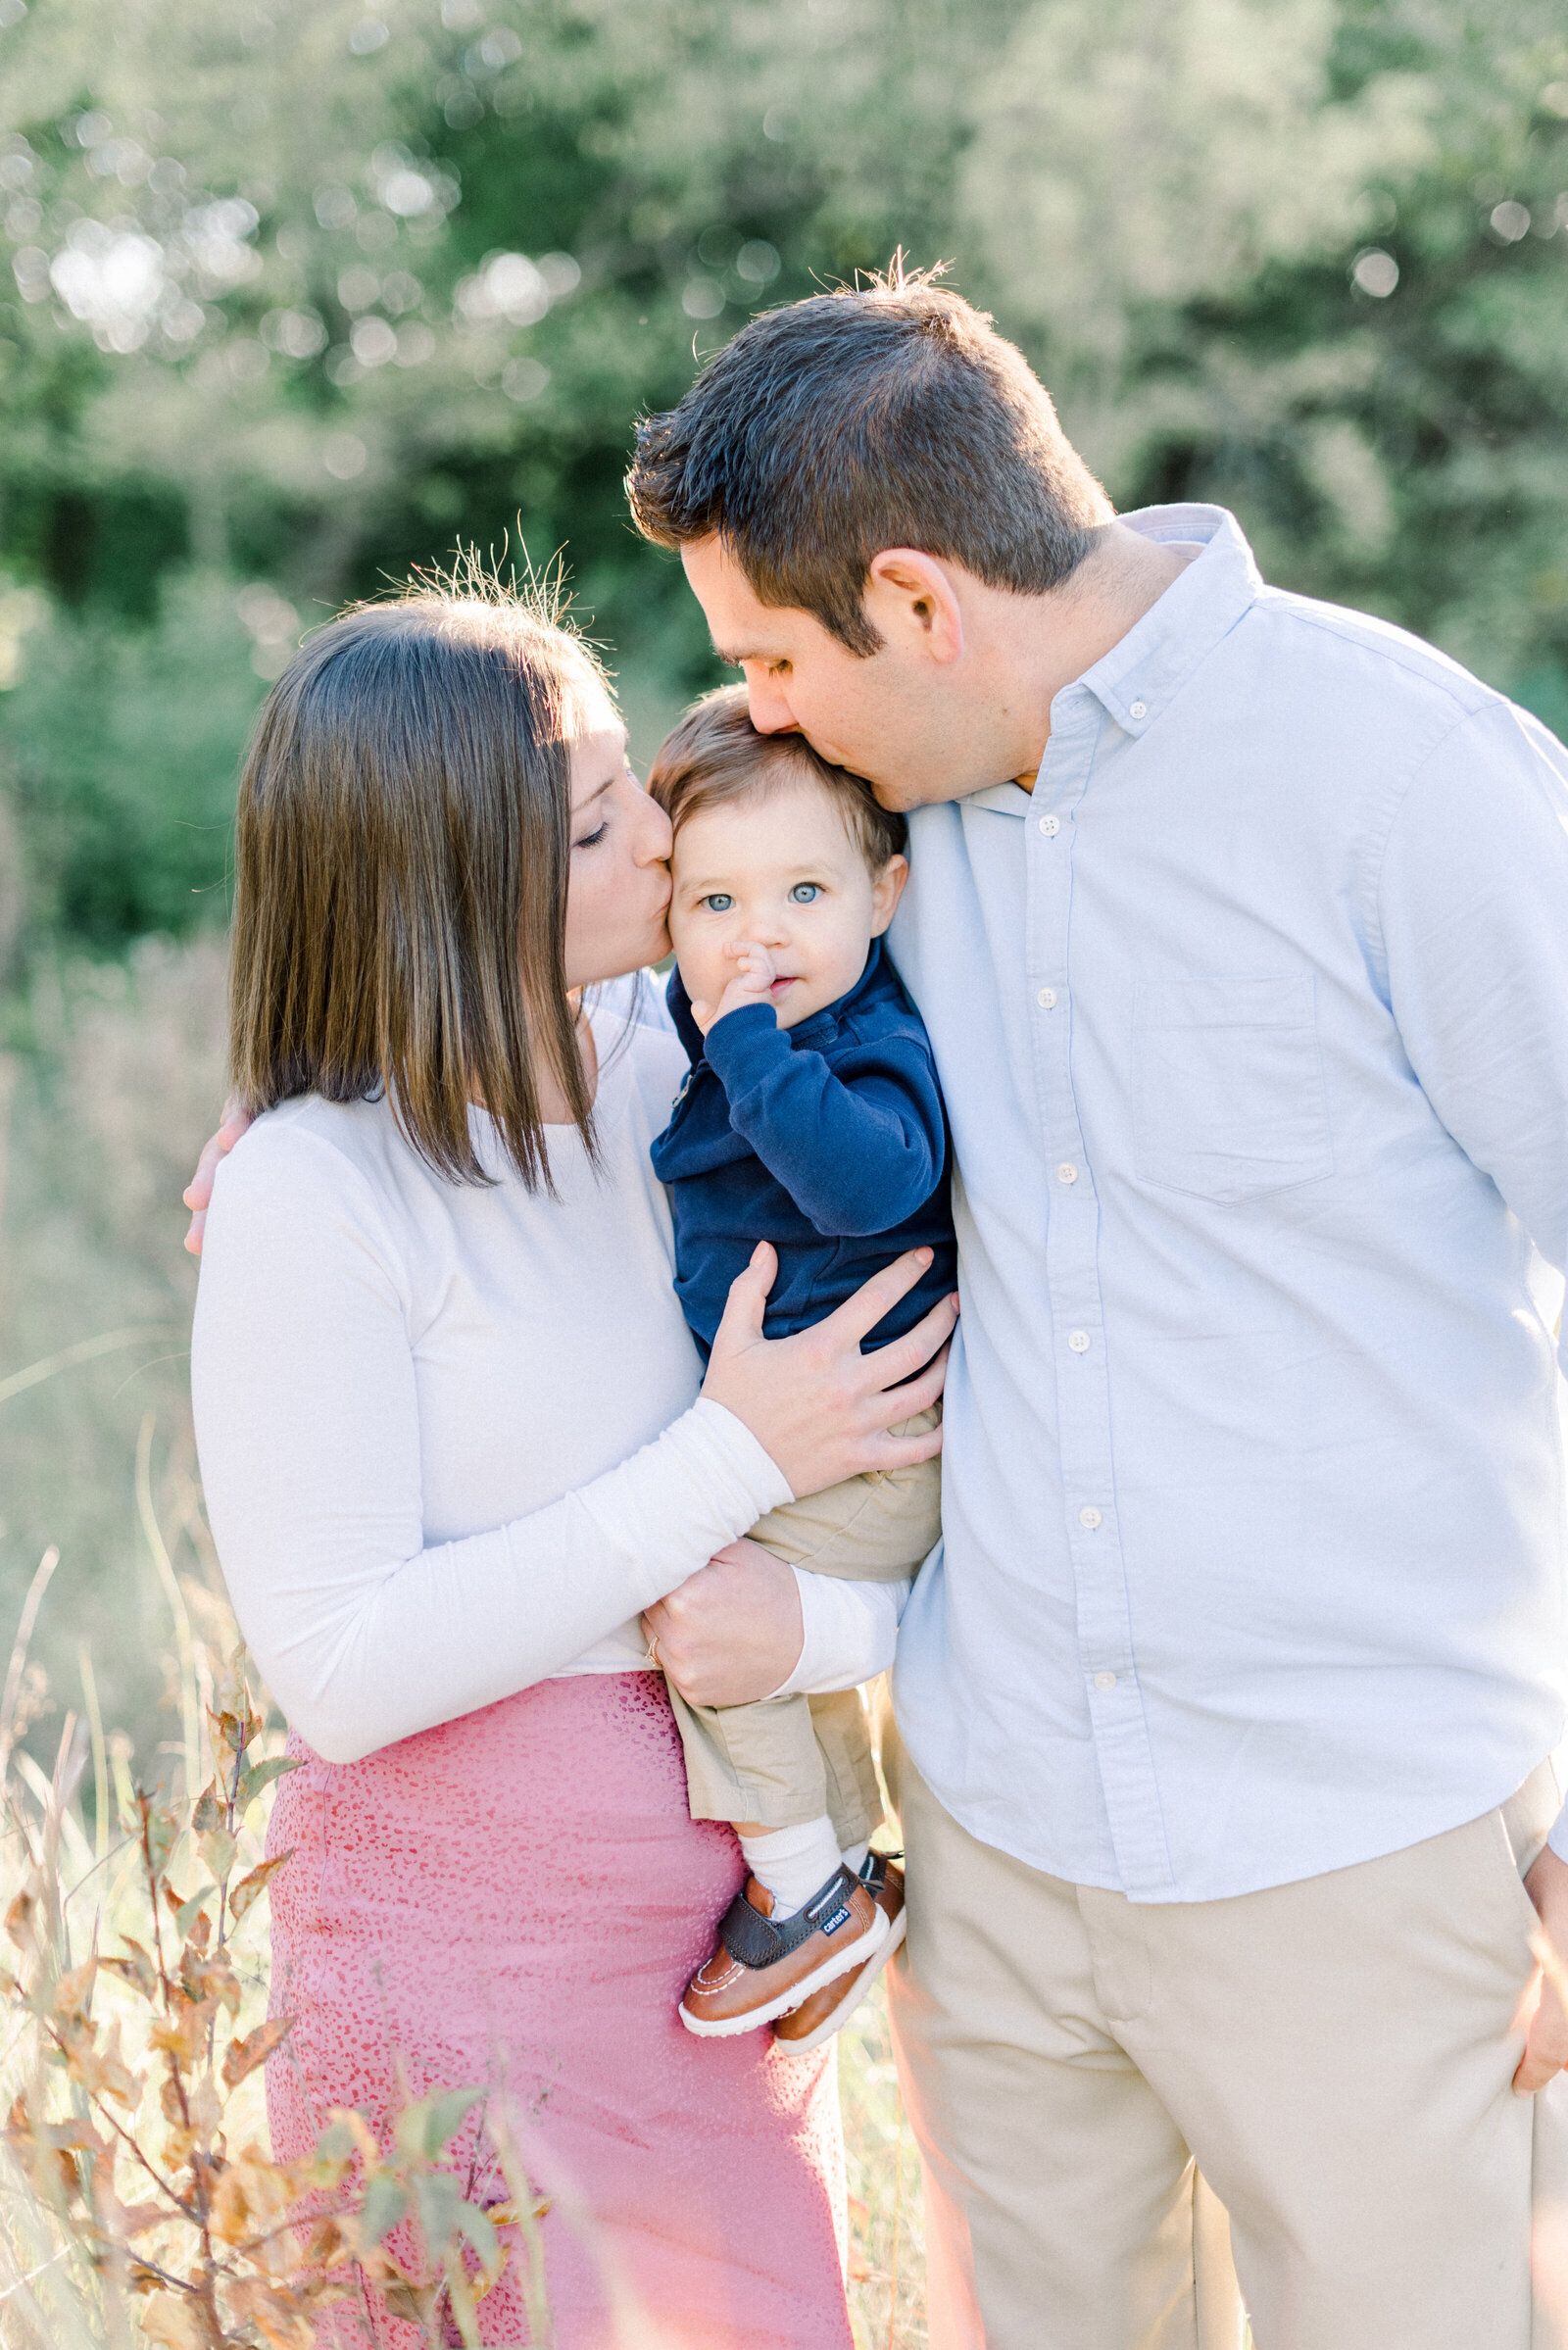 Sunset_Family_Photoshoot_Shawnee_Mission_Park_Kansas_City_Robinson020-2